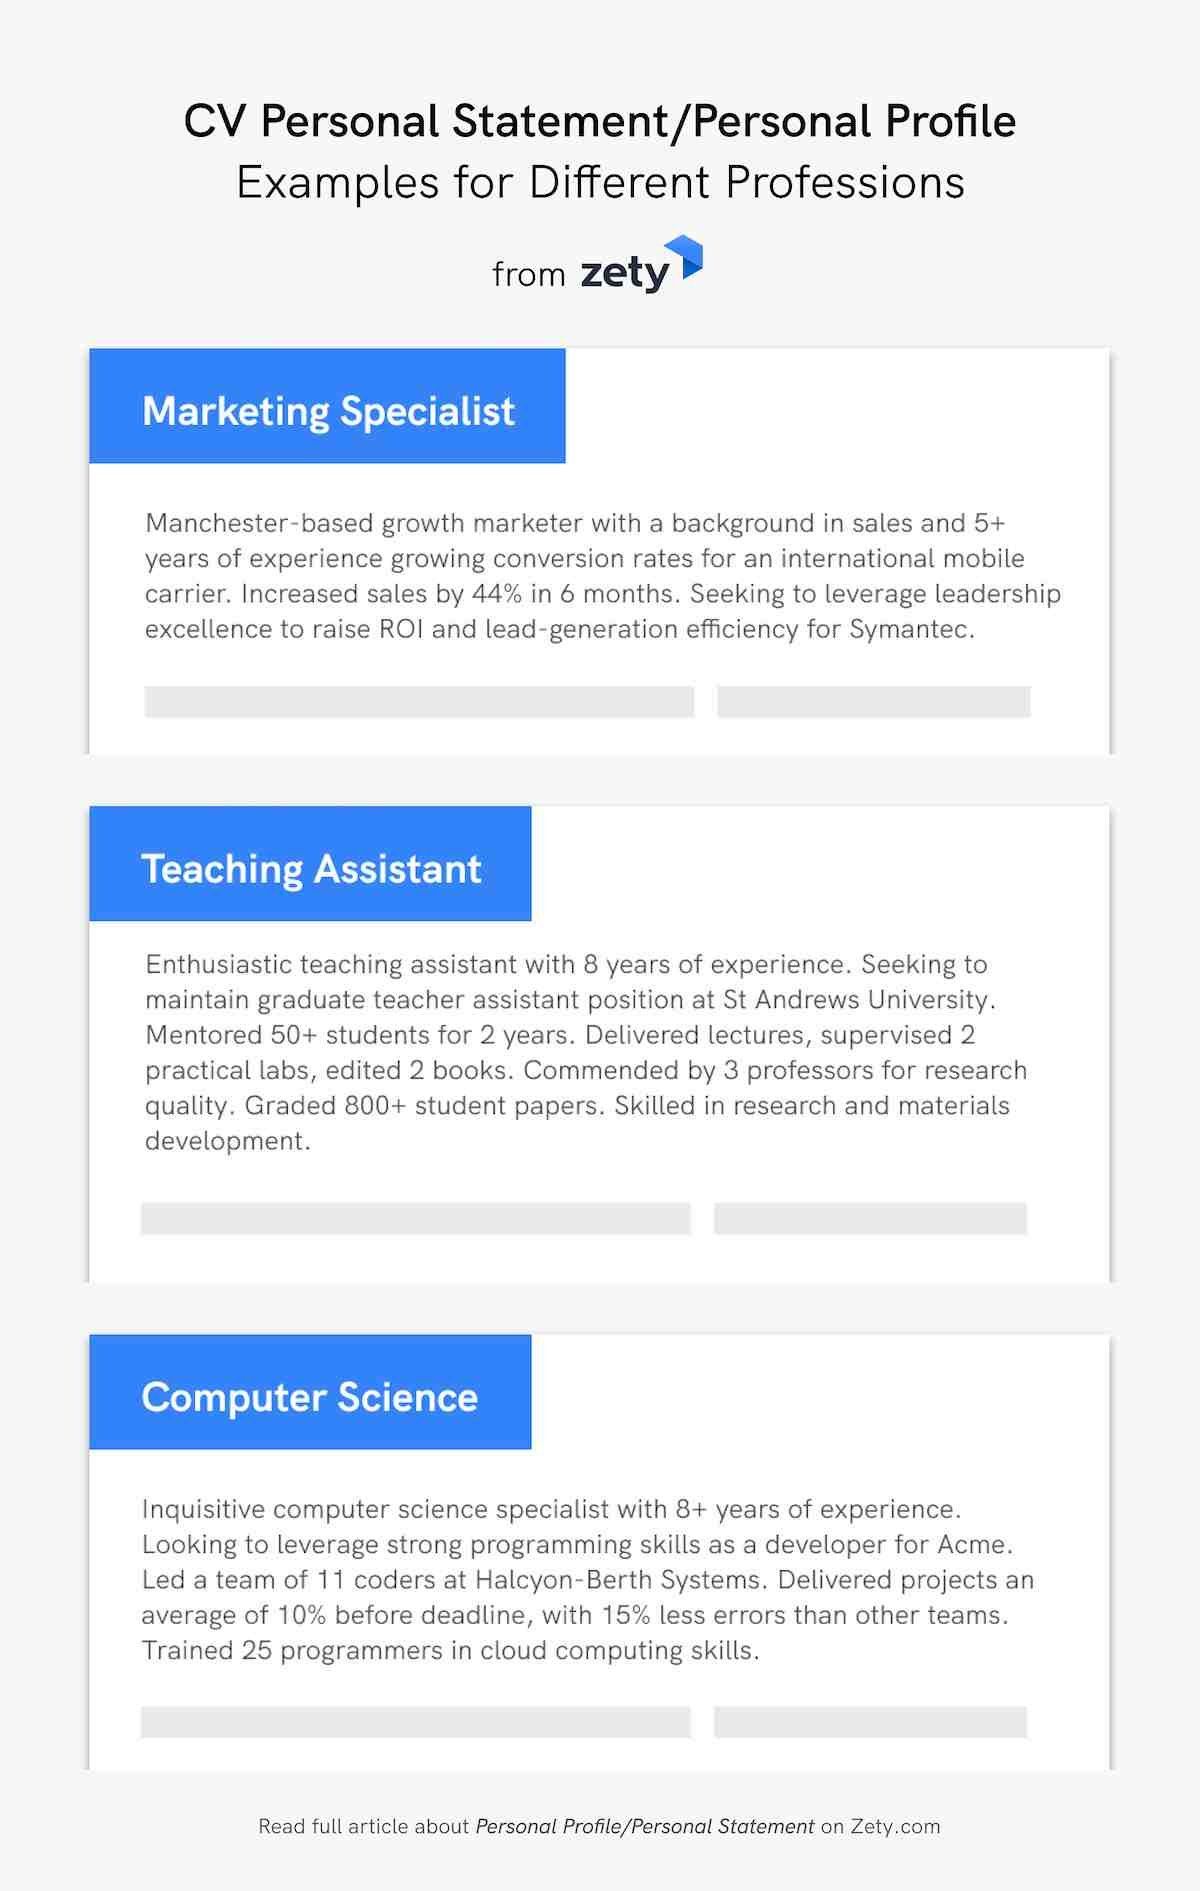 personal statement profile for resume cv examples statementpersonal different professions Resume Personal Profile Resume Examples